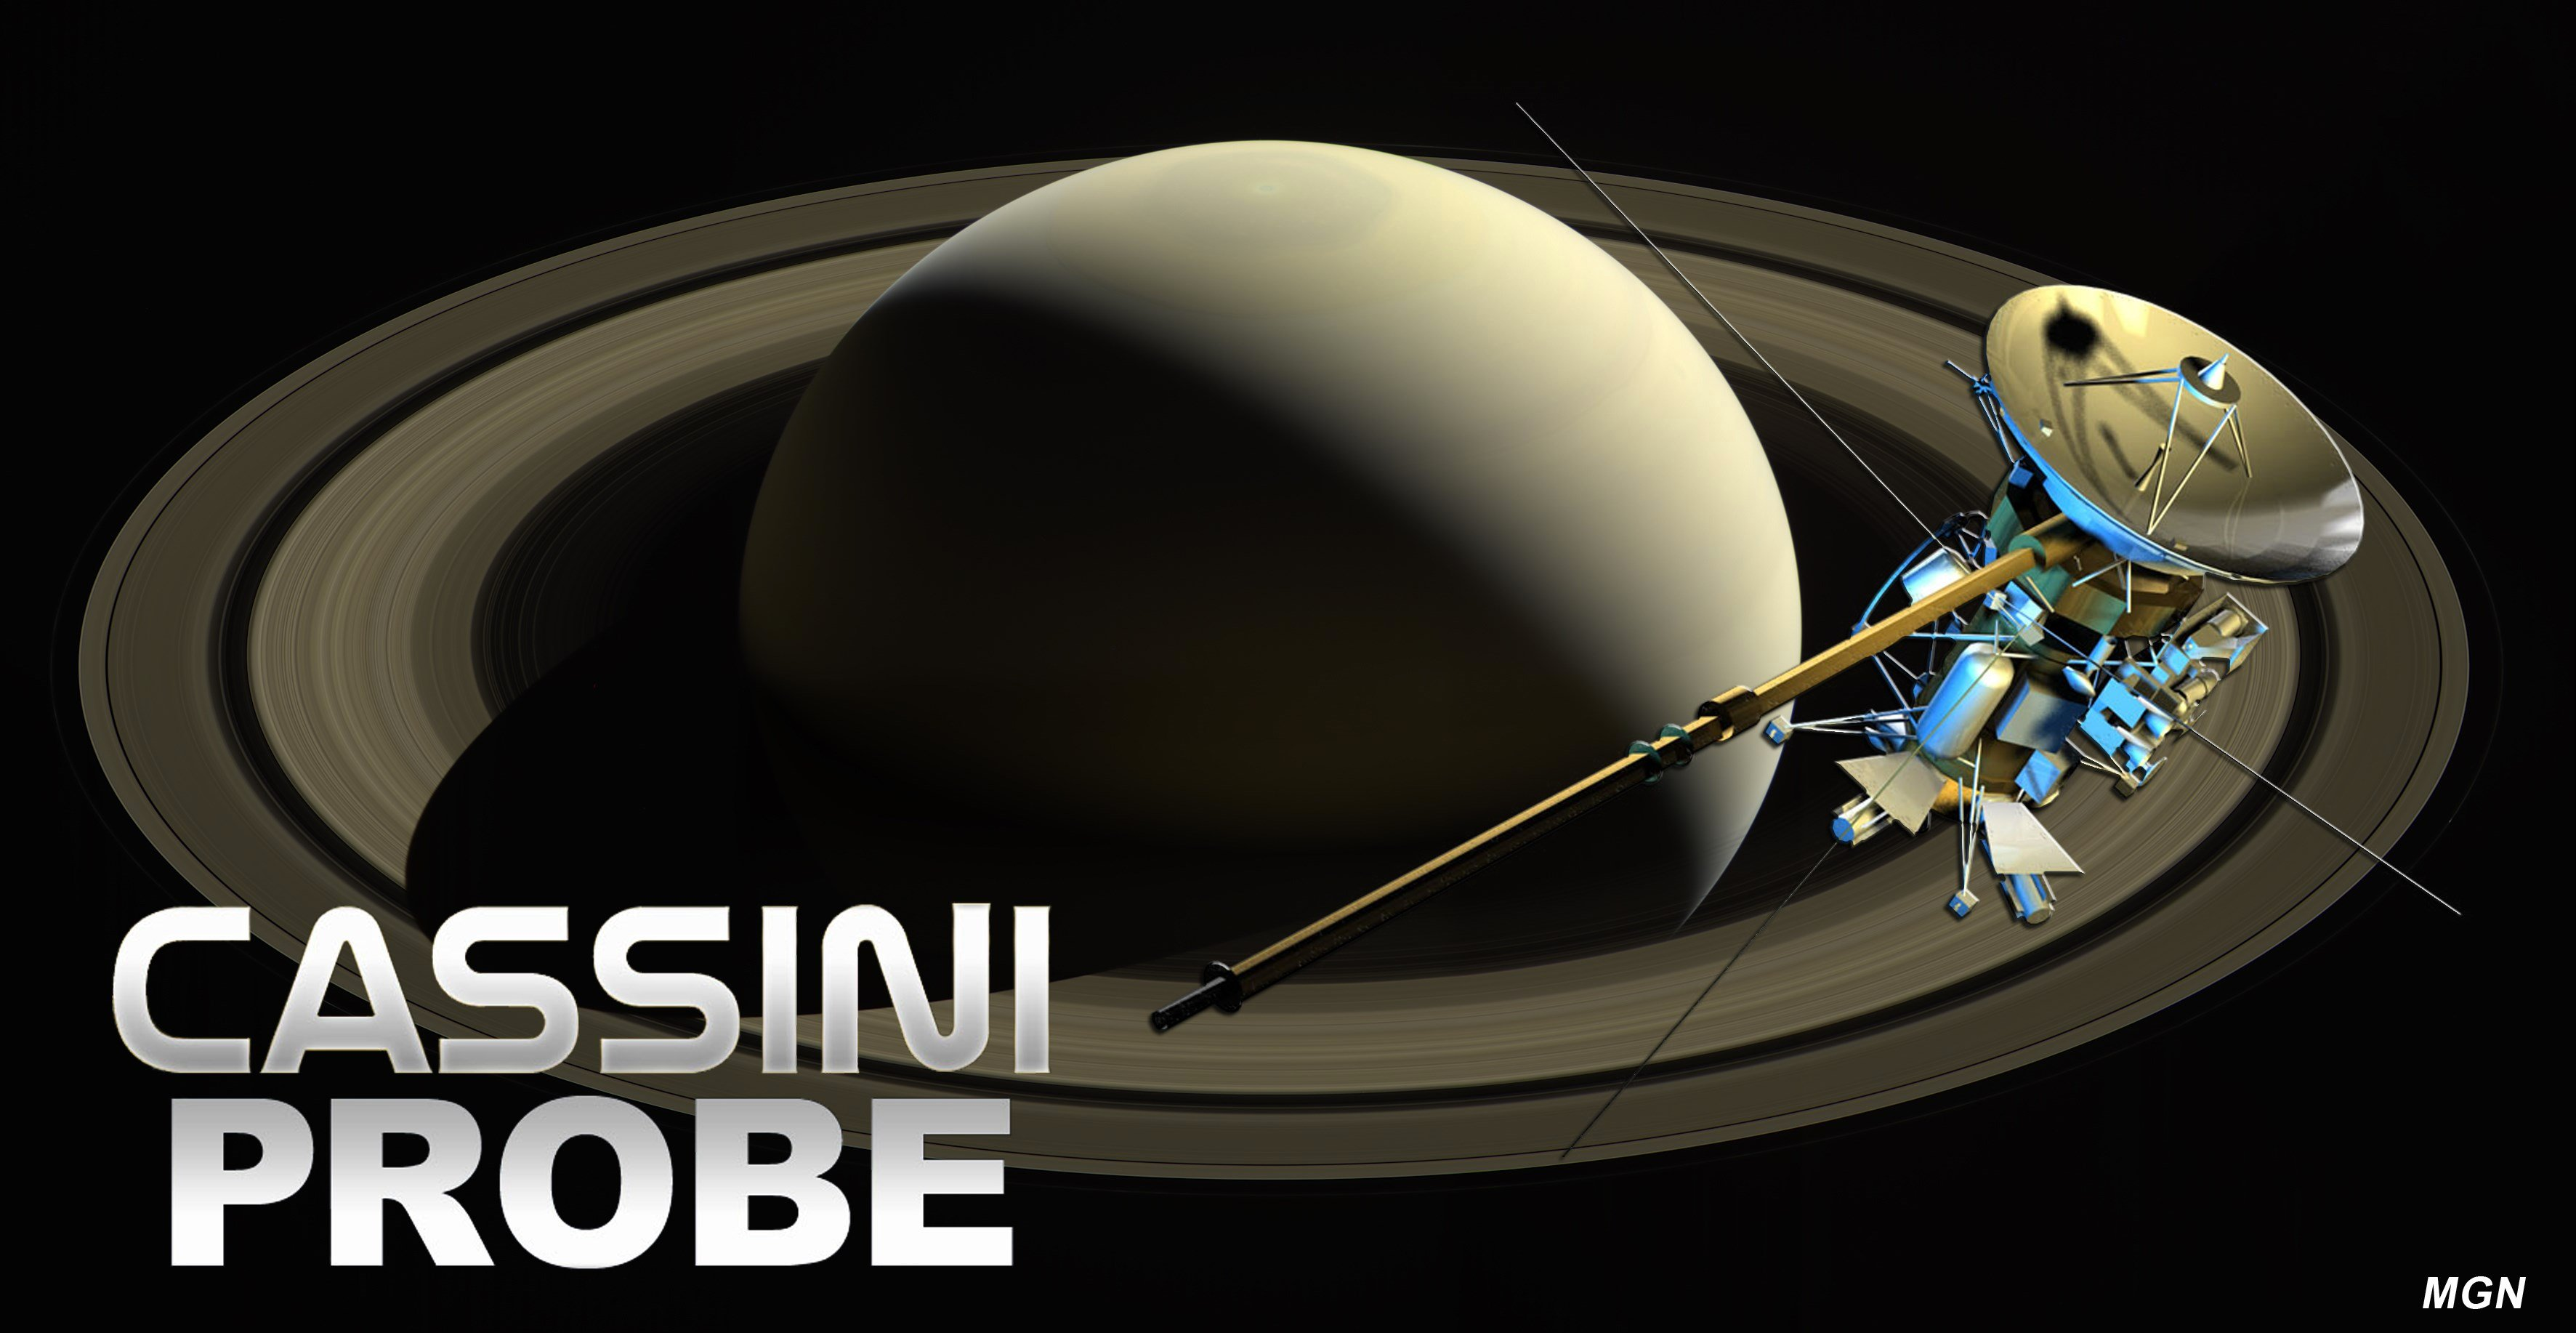 Cassini on course into Saturn's atmosphere